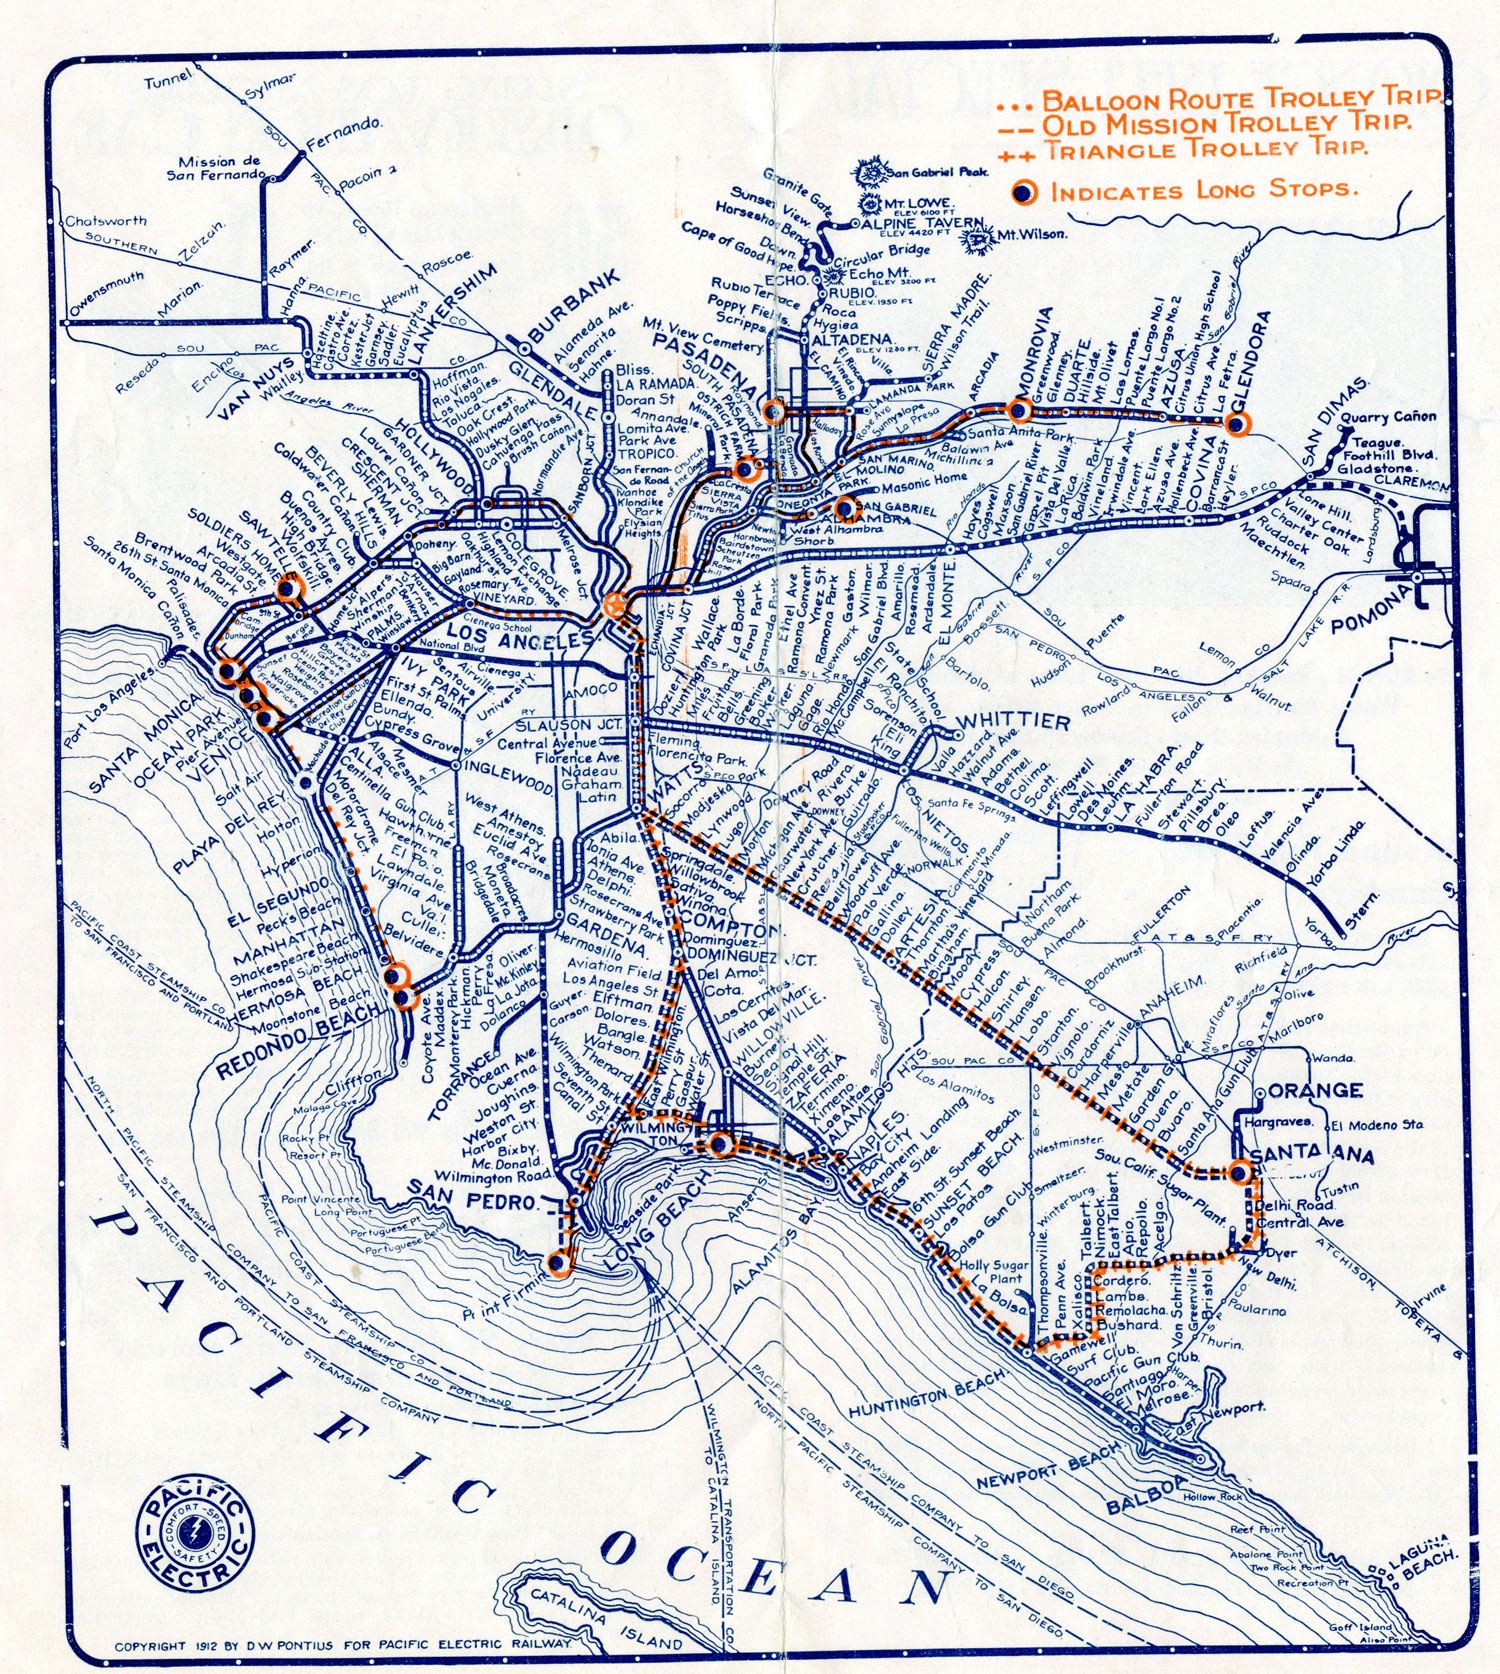 pacific electric railway map Citydig Daytrippin On The Pacific Electric Trolley Los Angeles pacific electric railway map